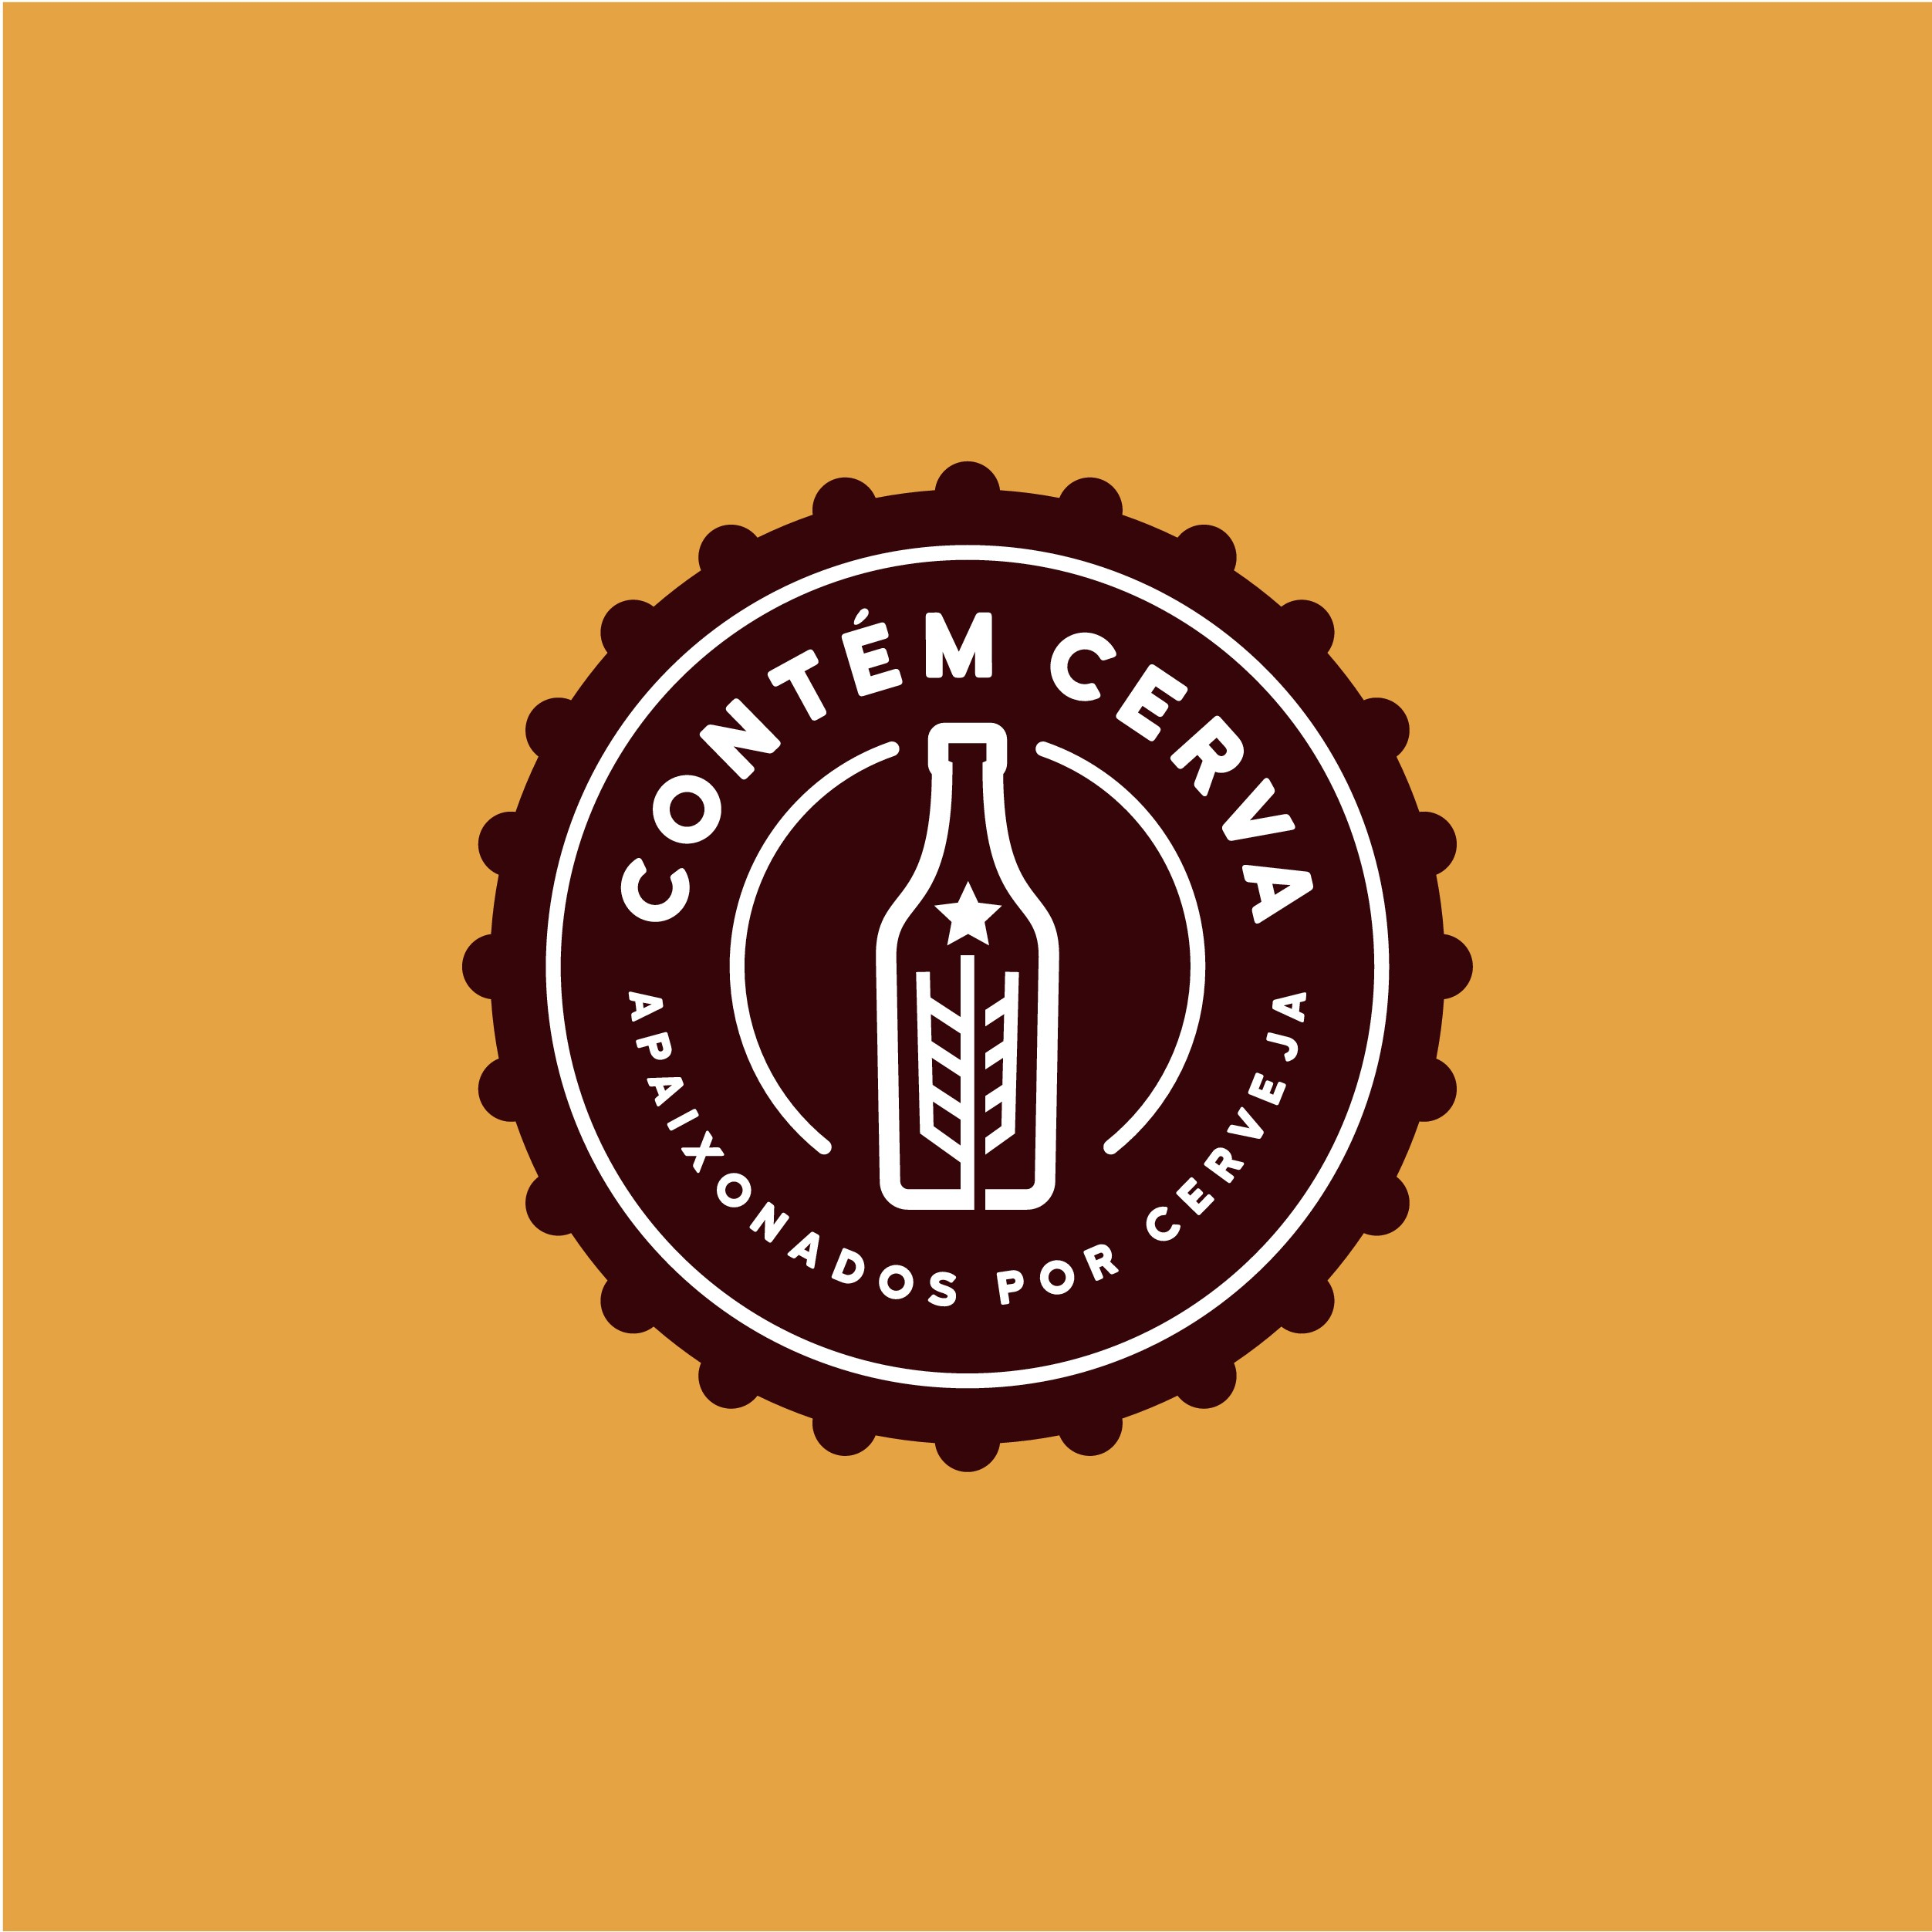 Craft Beer Startup looking for a badass logo!